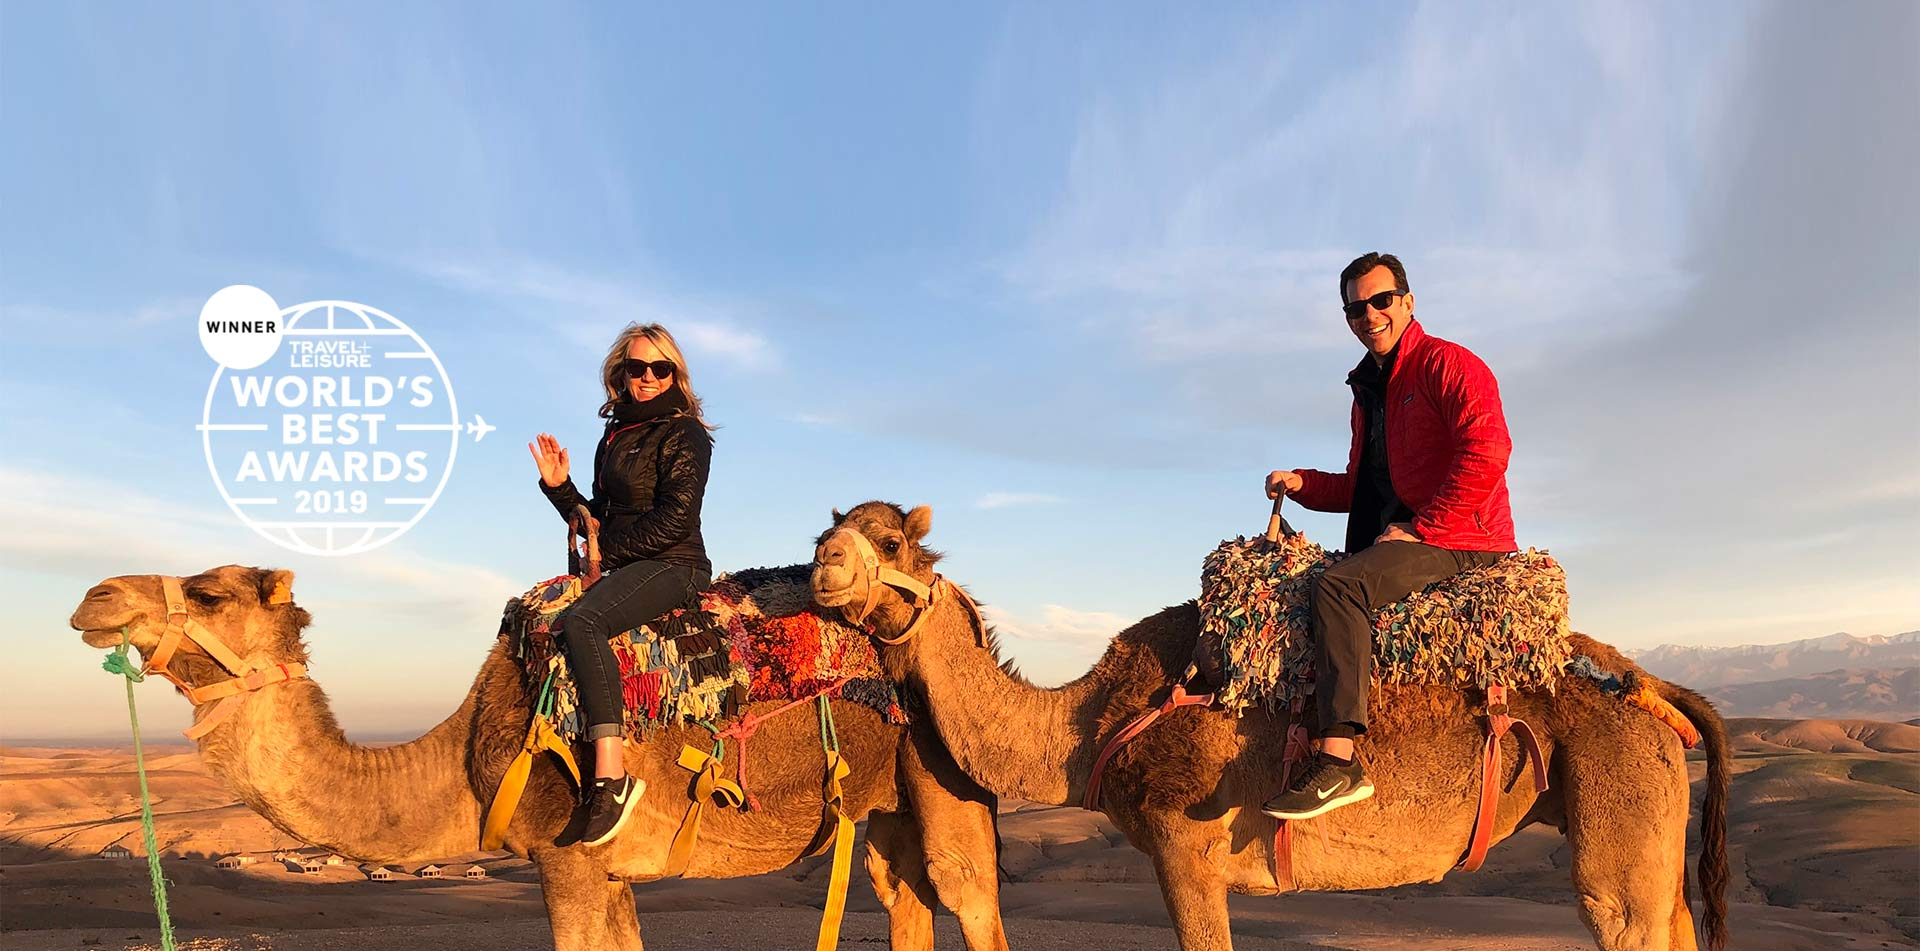 Ed and Susie on camel